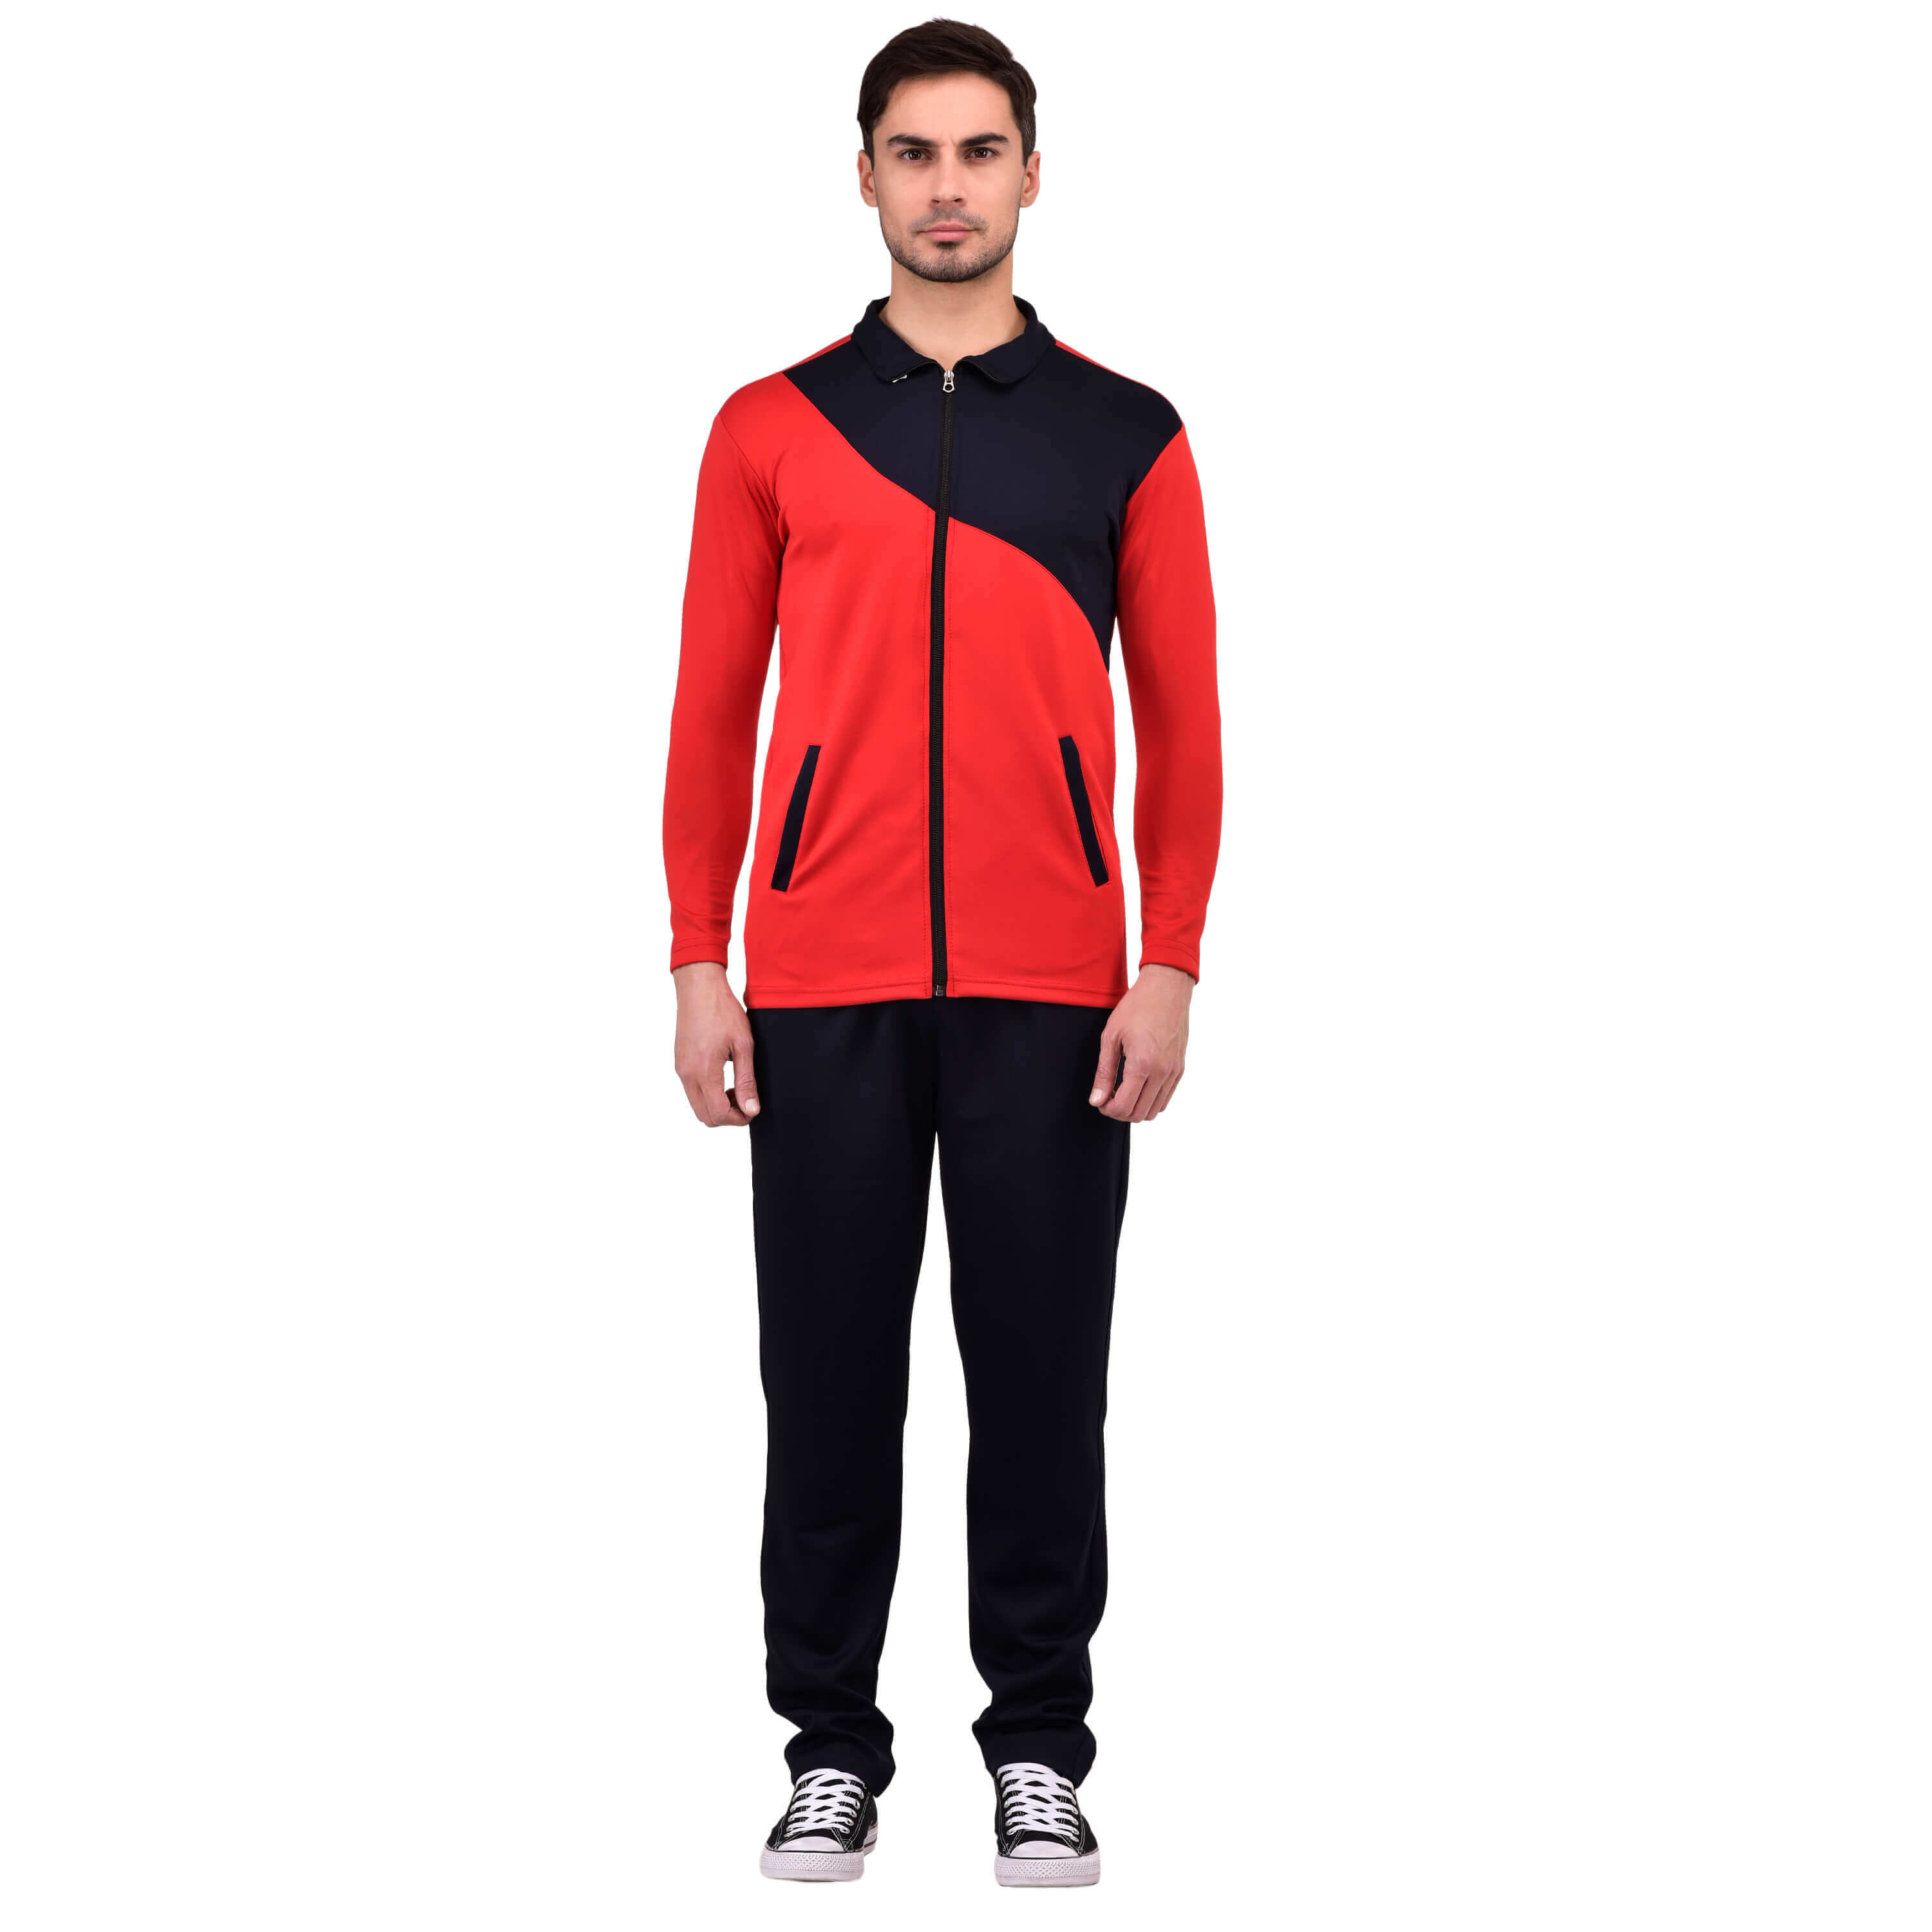 Mens Jogging Suits Manufacturers in Saharanpur